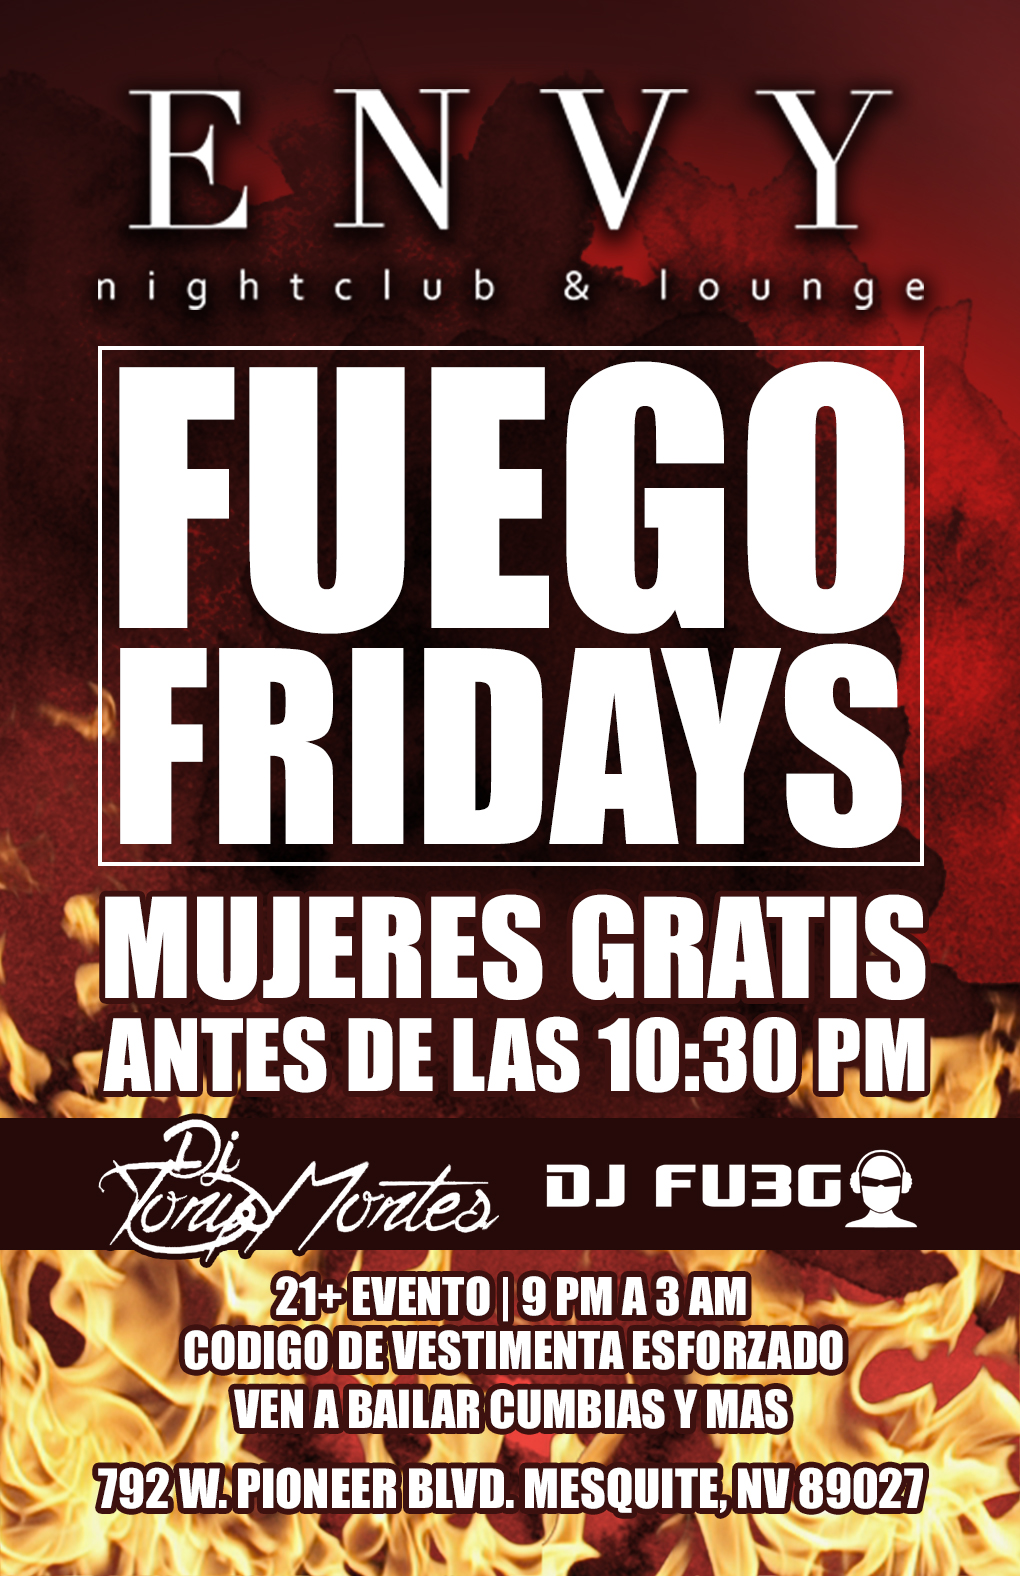 envy_friday_fuego